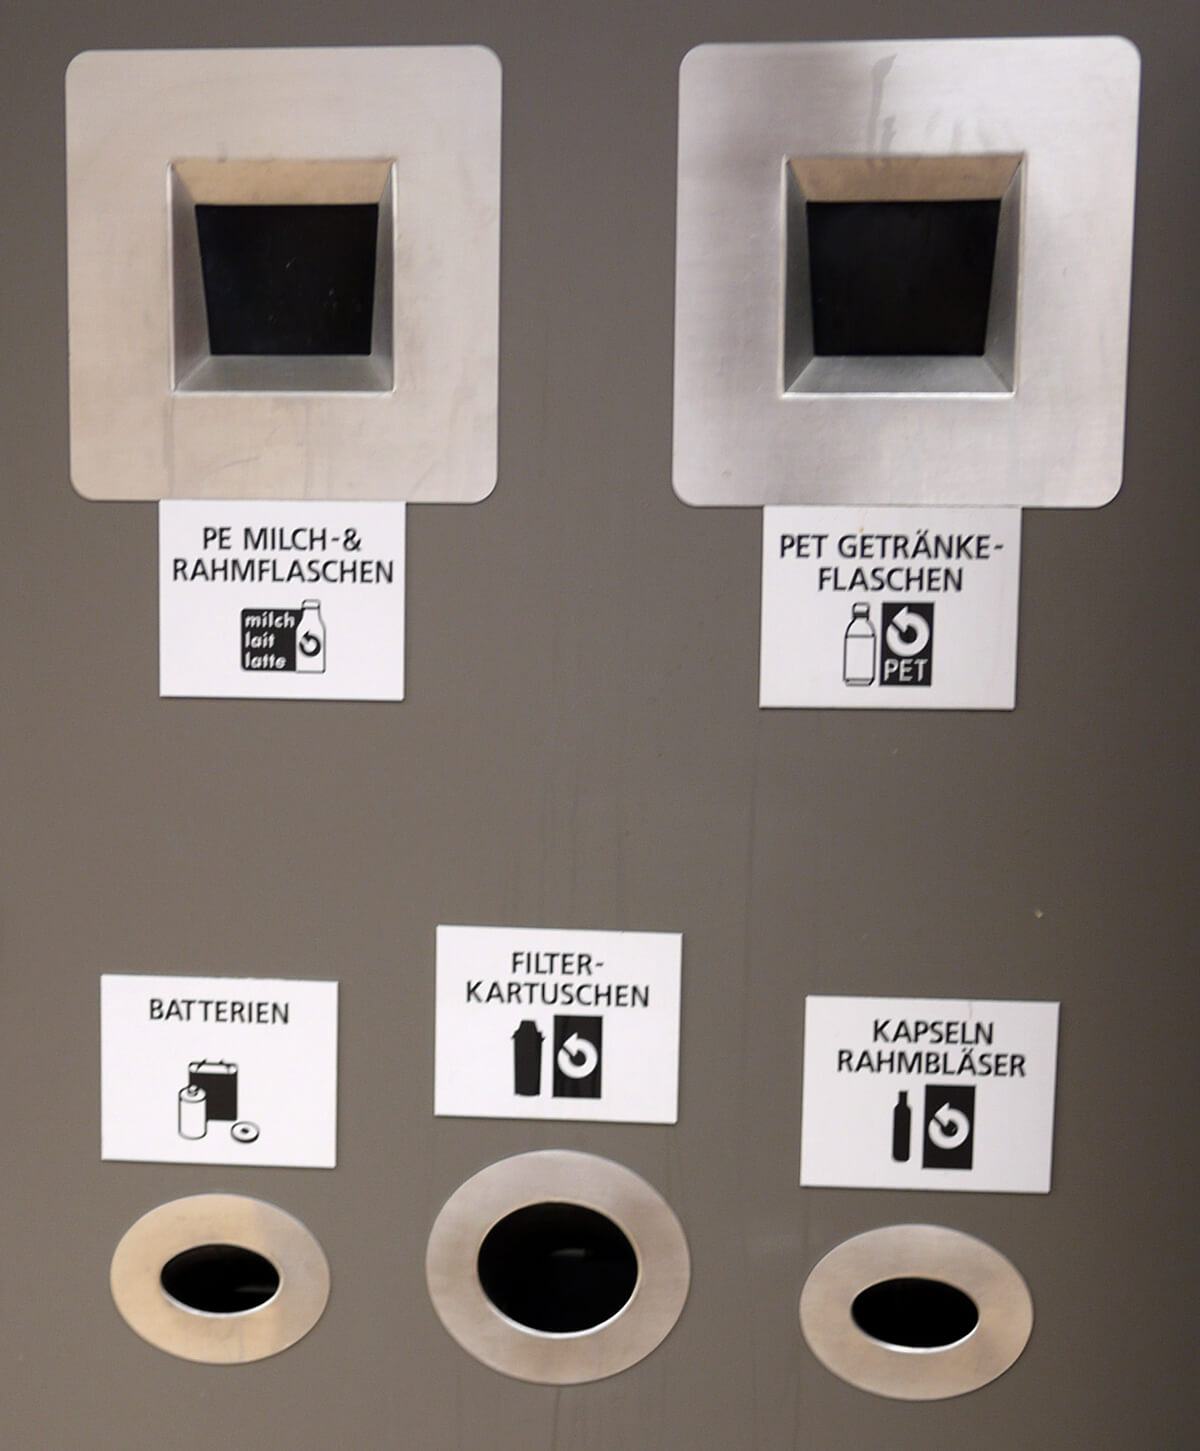 Recycling in Switzerland